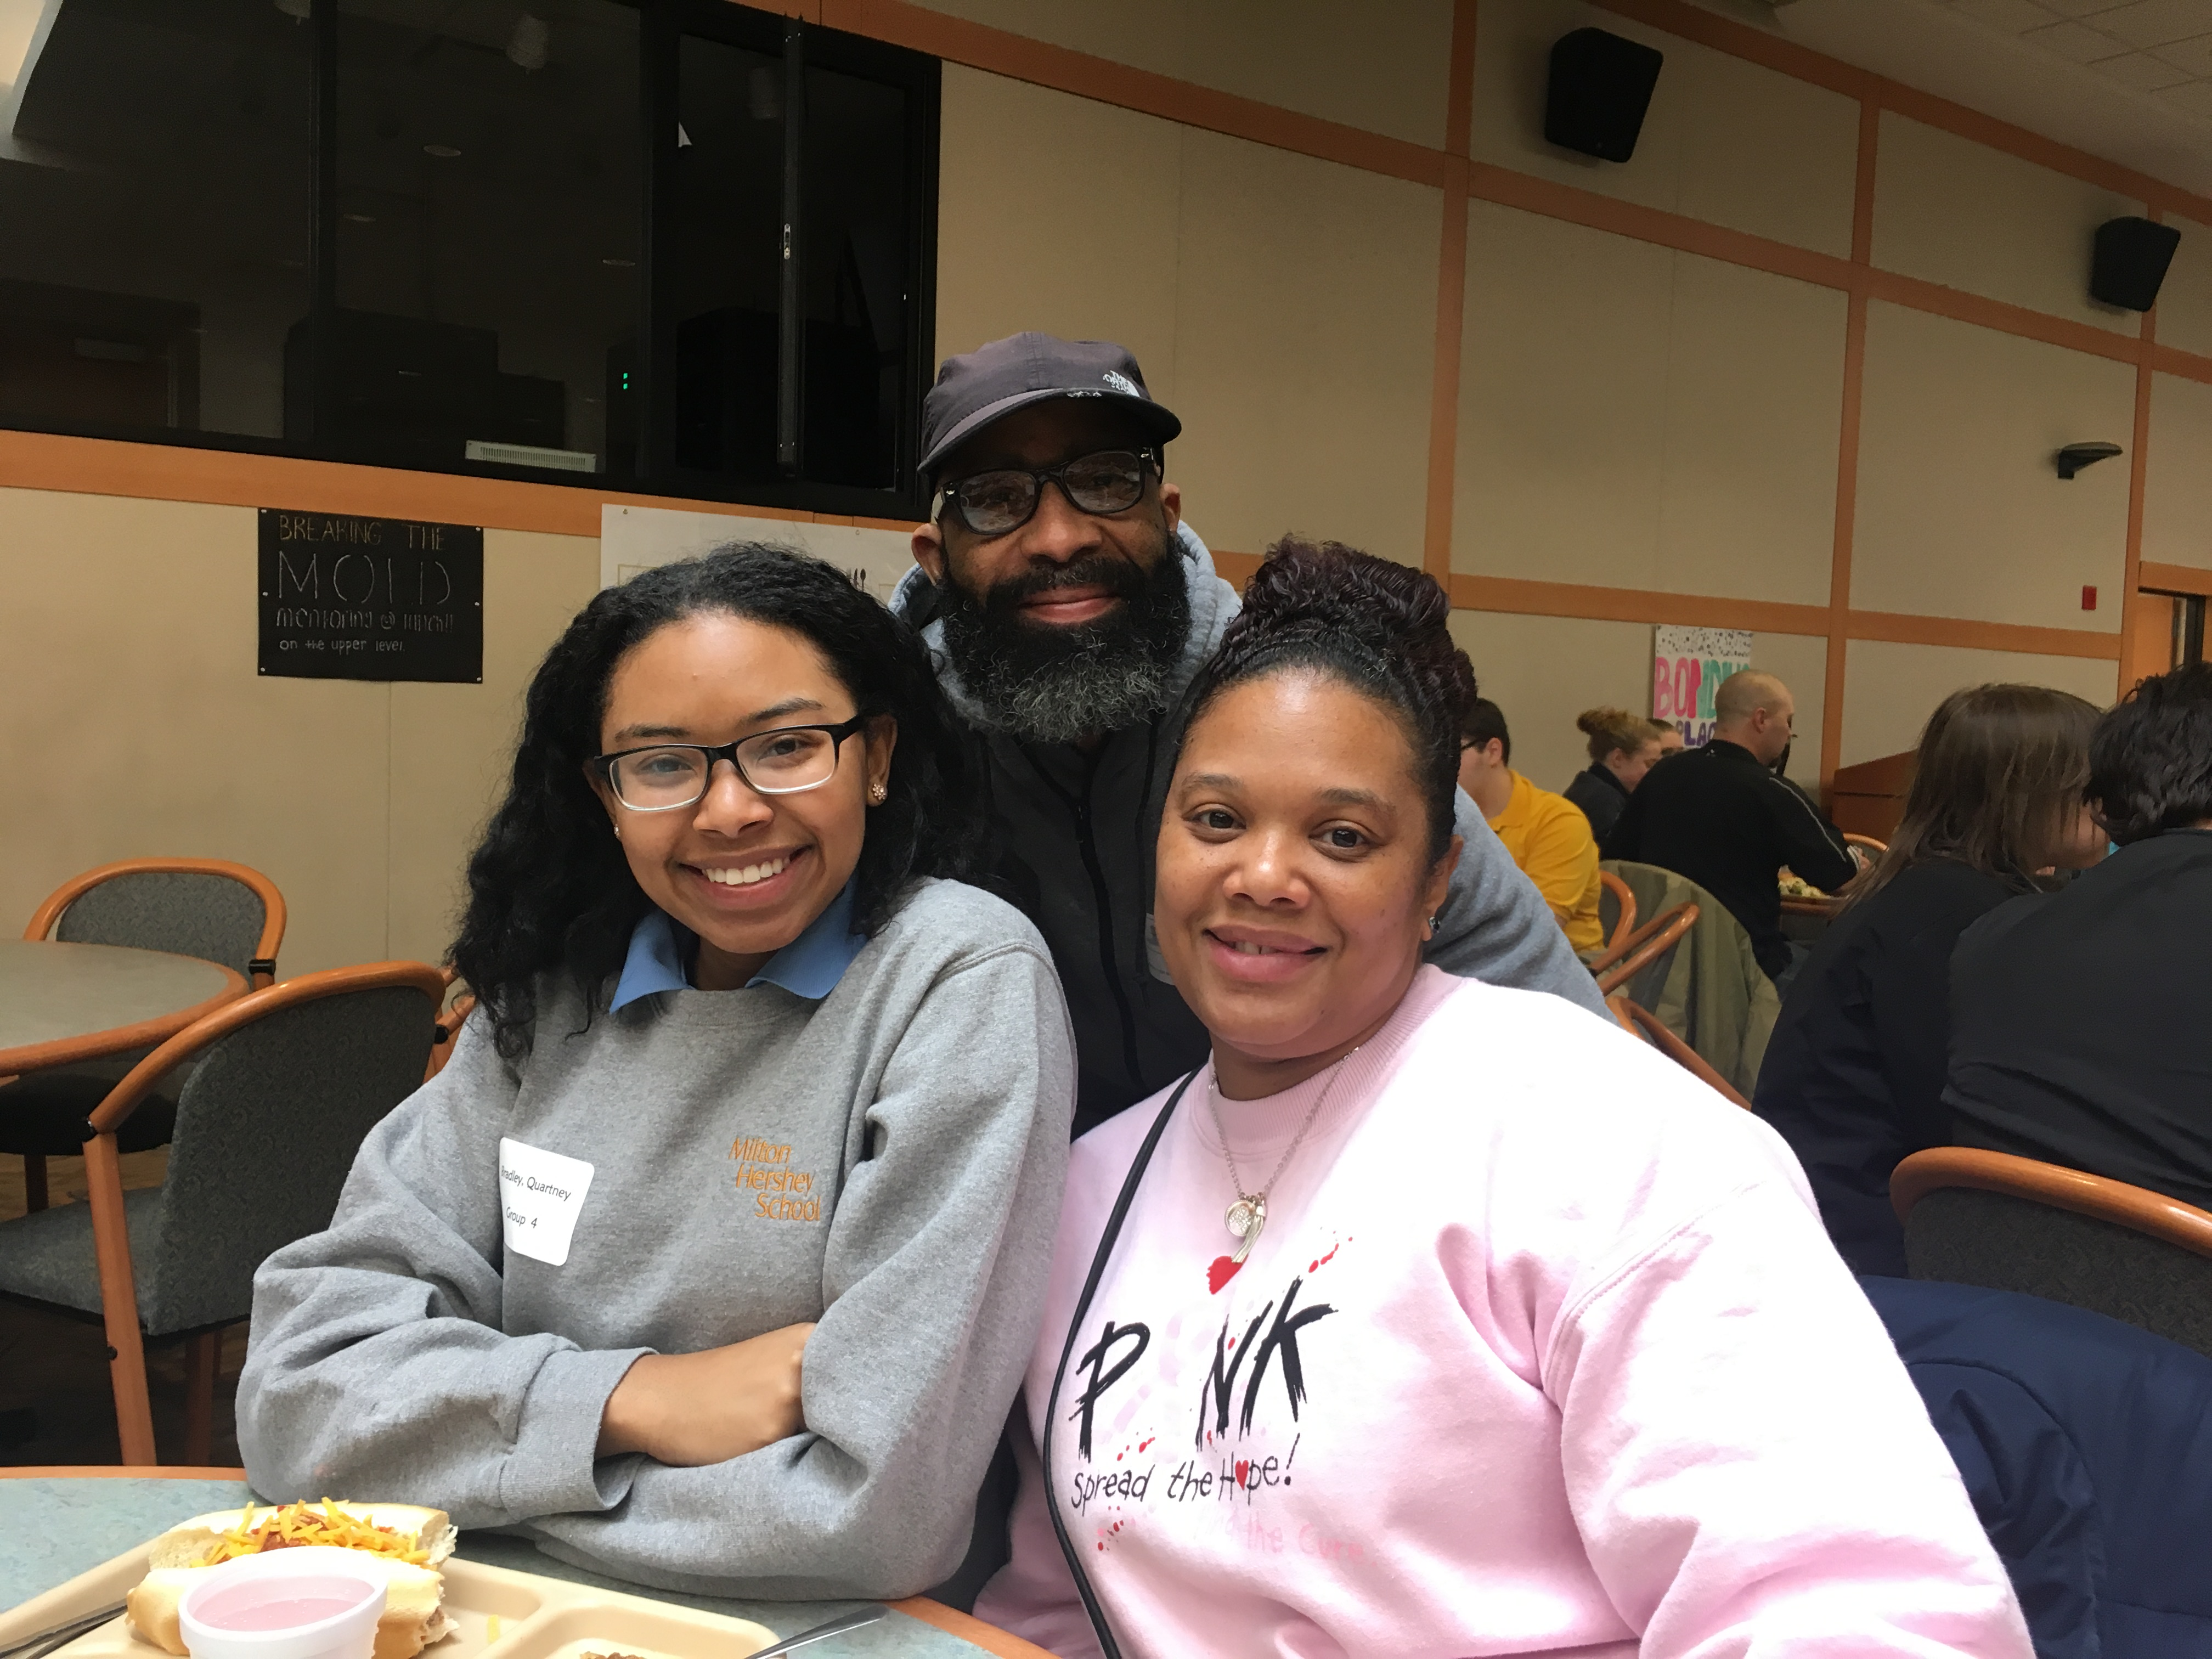 On March 9-11, Milton Hershey School hosted its annual Winter Family Weekend.